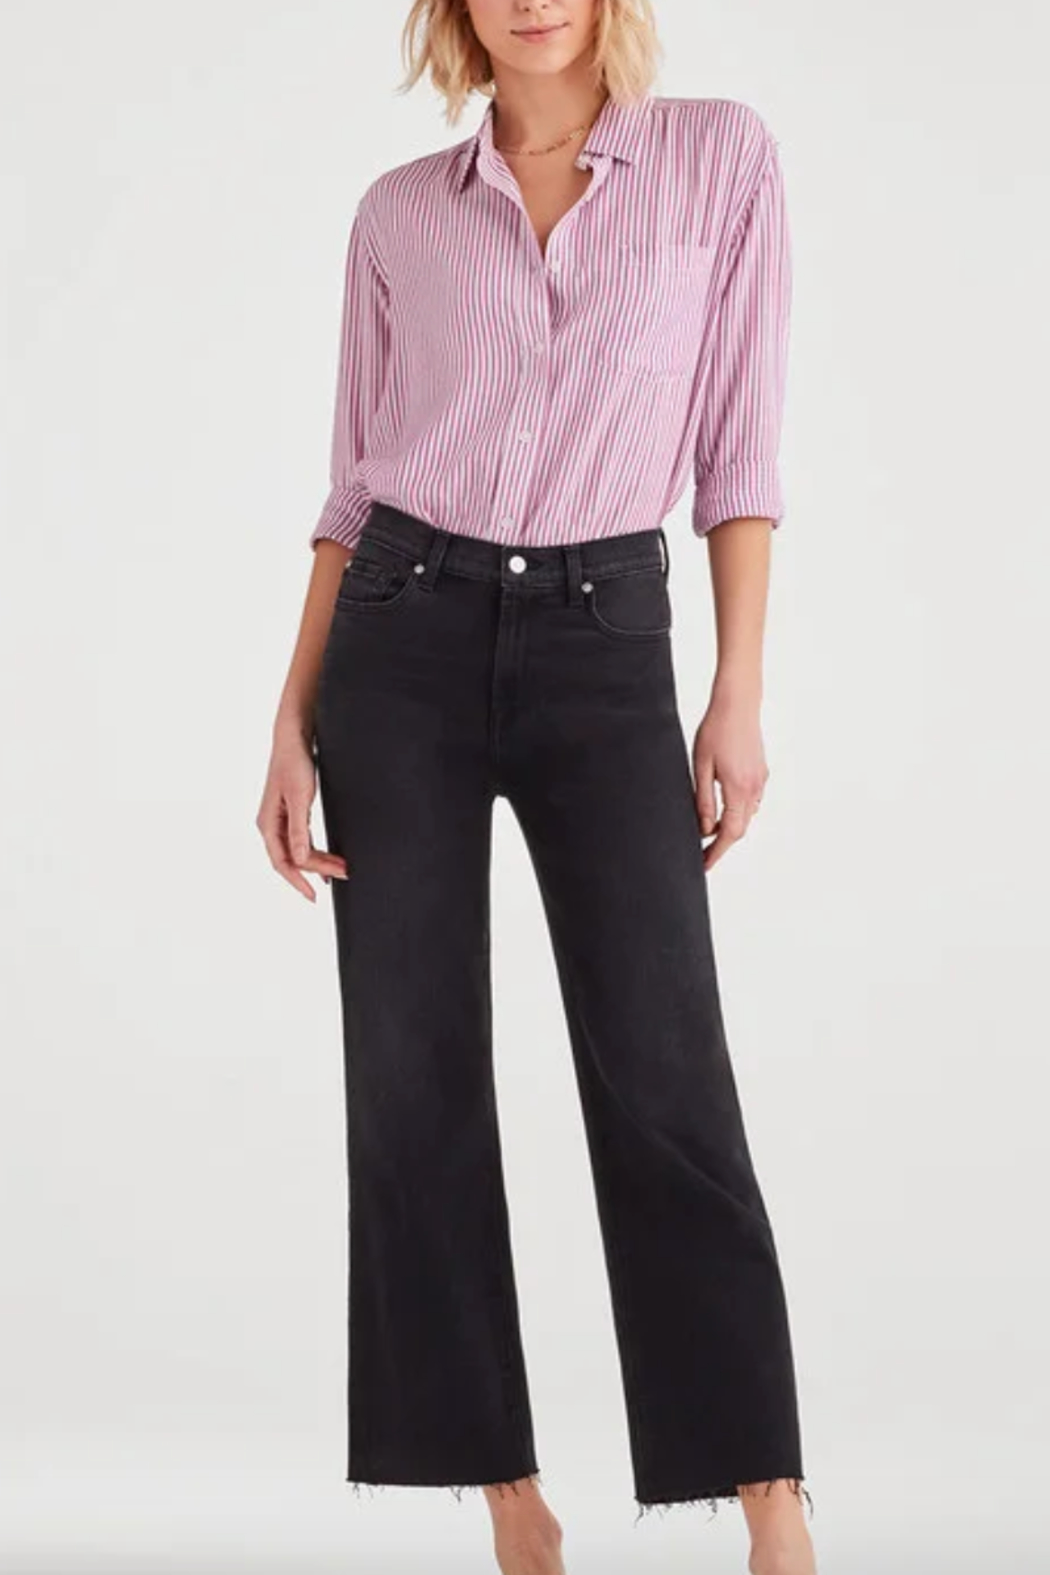 7 For all Mankind Striped High Low Tie Front Shirt - Back Cropped Image